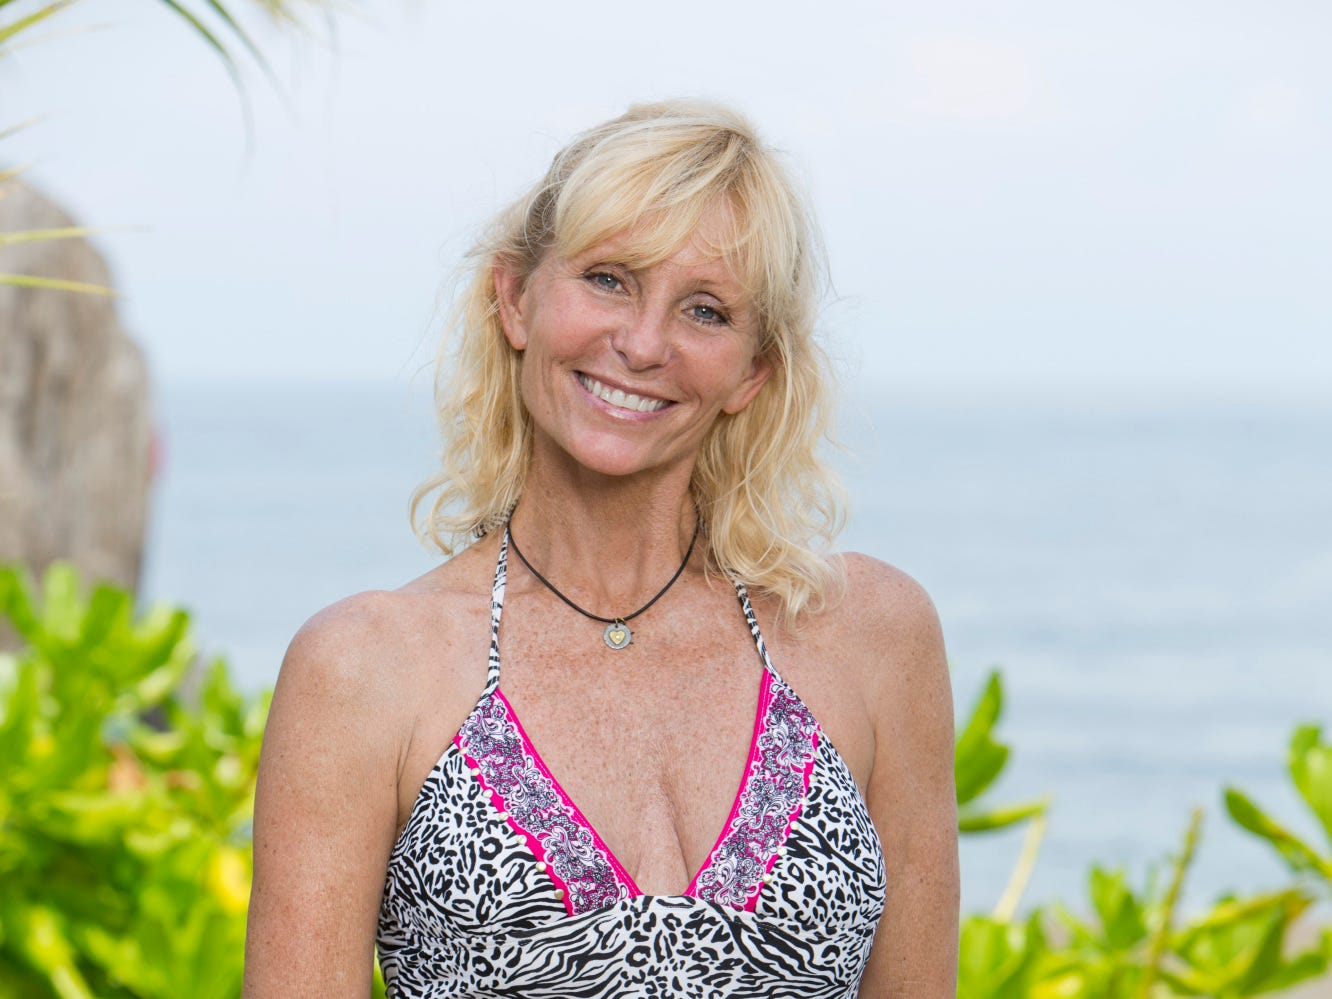 Former Survivor Winner, Tina Wesson will be one of 20 castaways competing with their loved one and other returning players on SURVIVOR: BLOOD VS. WATER, when the Emmy Award-winning series returns for its 27th season with a special 90 minute premiere, Wednesday, Sept. 18 (8:00-9:30 PM, ET/PT) on the CBS Television Network.